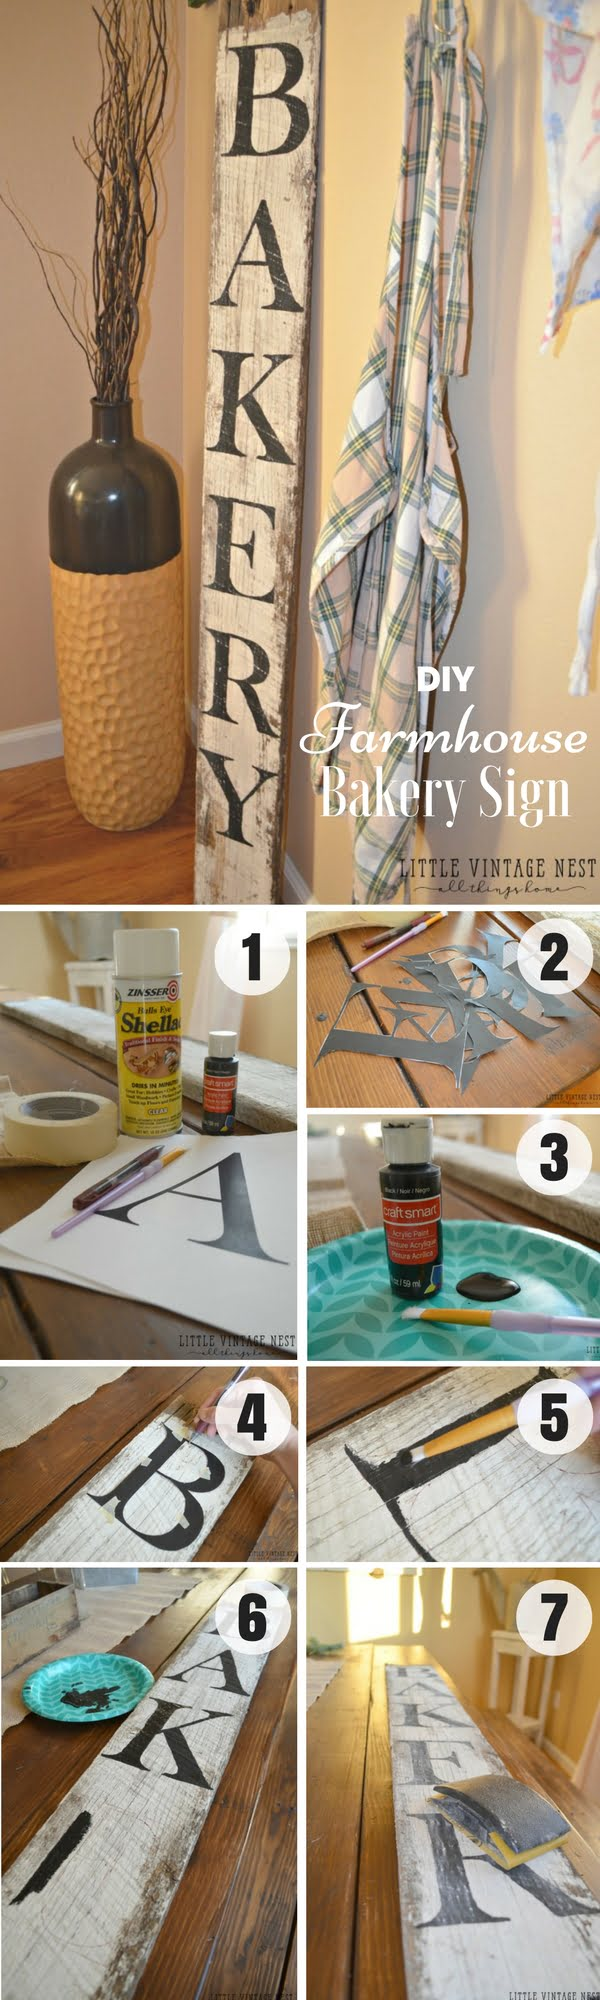 17 Fab DIY Farmhouse Signs You Can Make Yourself - Check out how to make an easy DIY Farmhouse Bakery Sign for kitchen decor